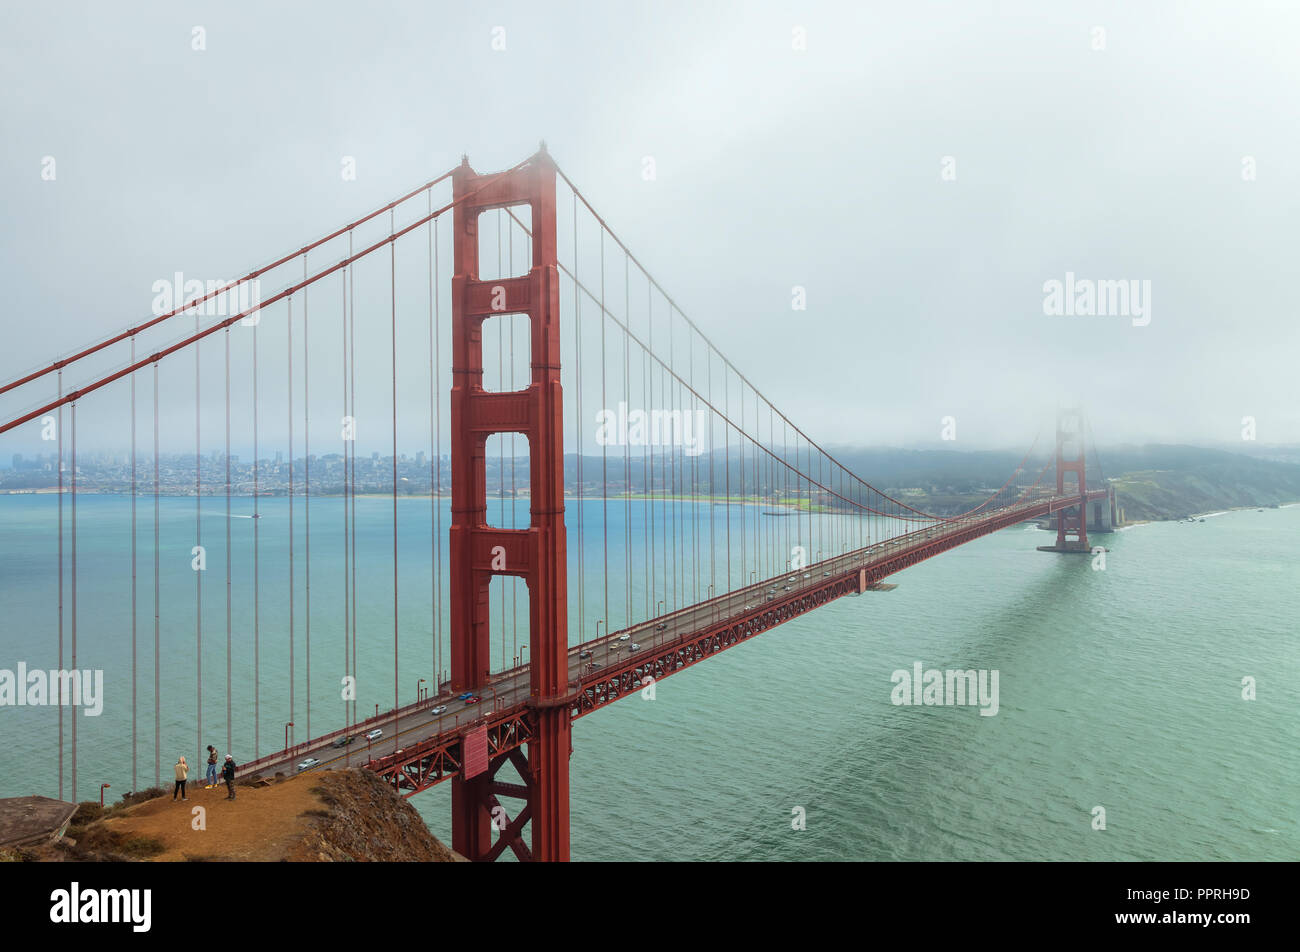 Golden Gate Bridge on an overcast morning, San Francisco, California, United States - Stock Image